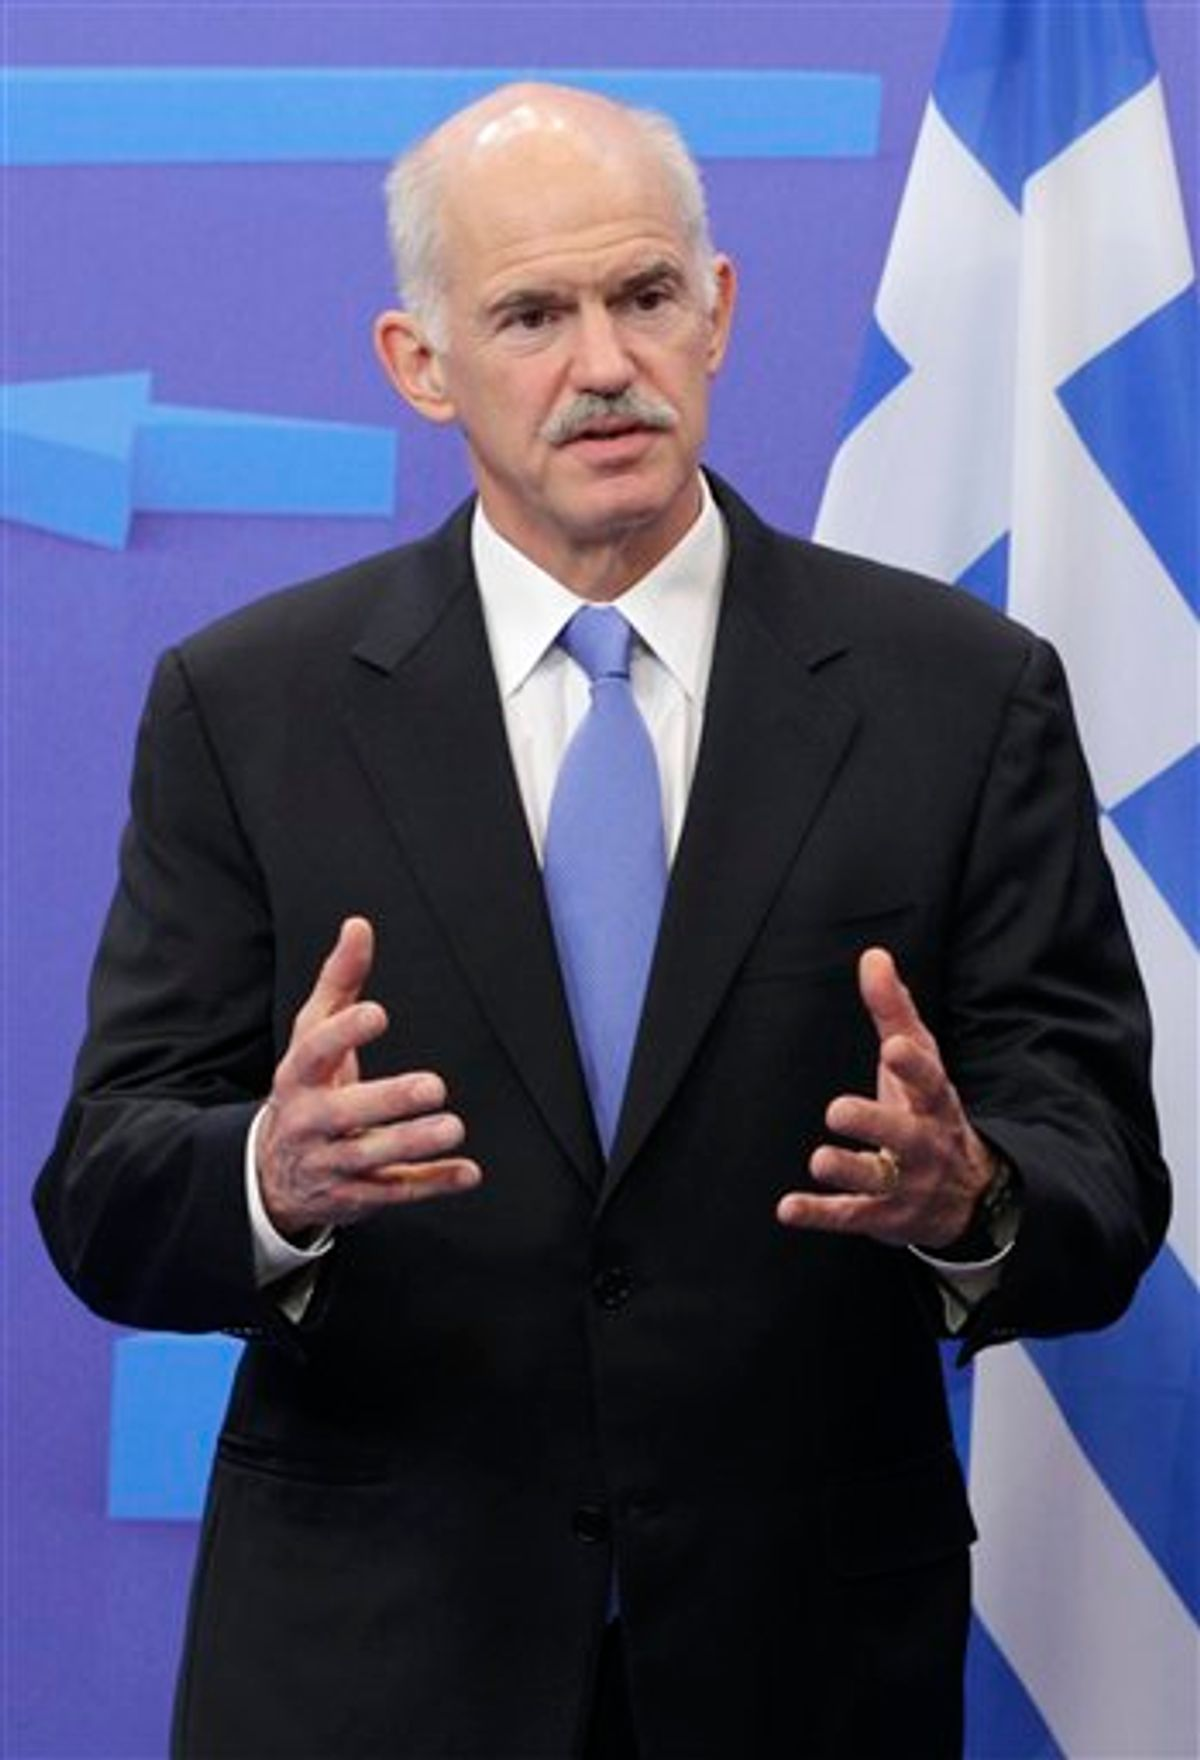 Greek Prime Minister George Papandreou addresses the media at the European Council building in Brussels, Monday, June 20, 2011. Greece's embattled Prime Minister headed to Brussels for meetings with EU President Herman Van Rompuy and European Commission President Jose Manuel Barroso. (AP Photo/Yves Logghe) (AP)